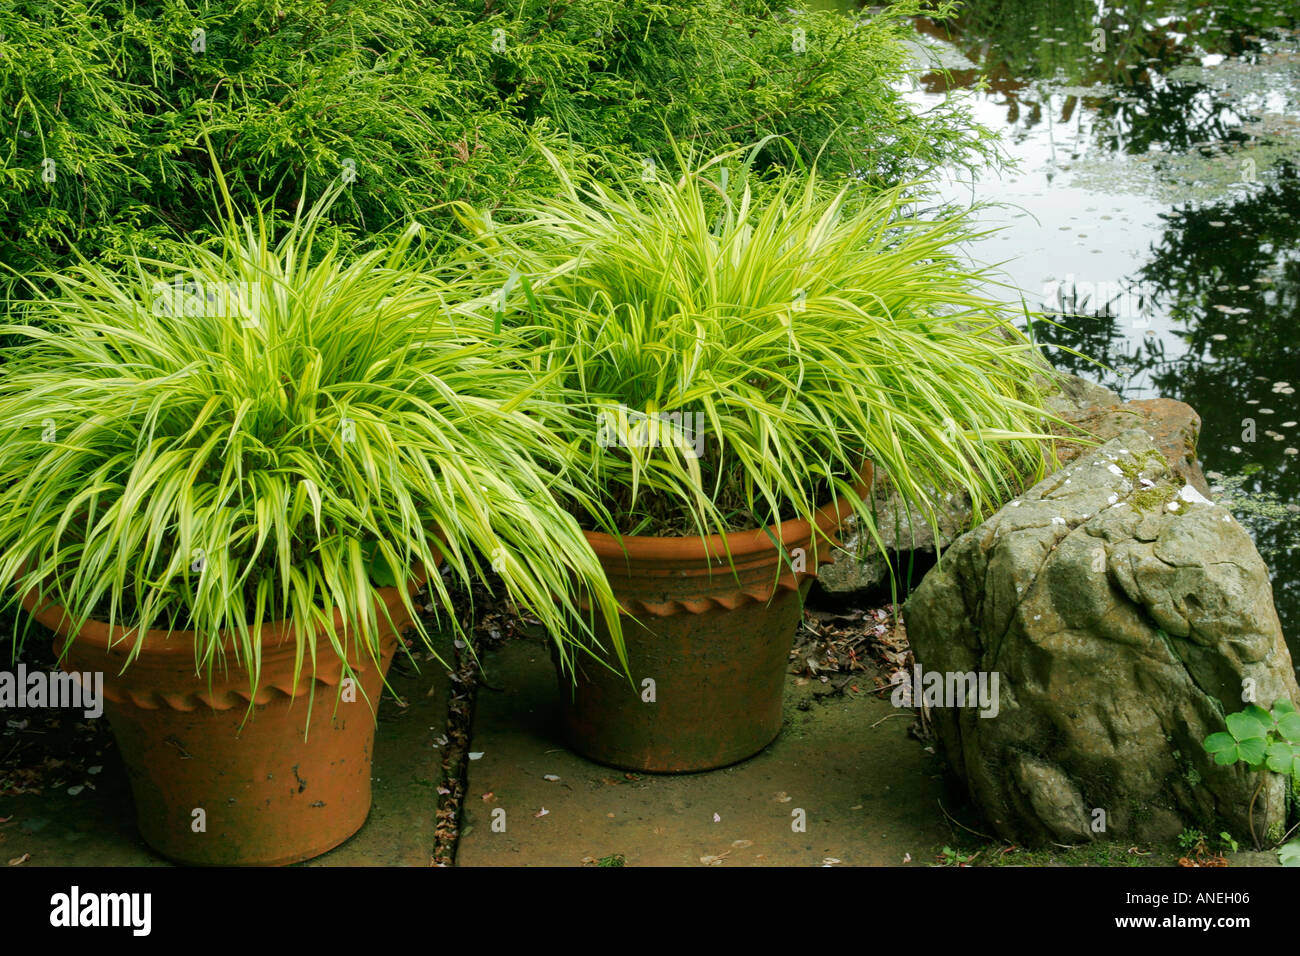 Golden hakone grass in containers next to pond botanical for Best ornamental grasses for pots